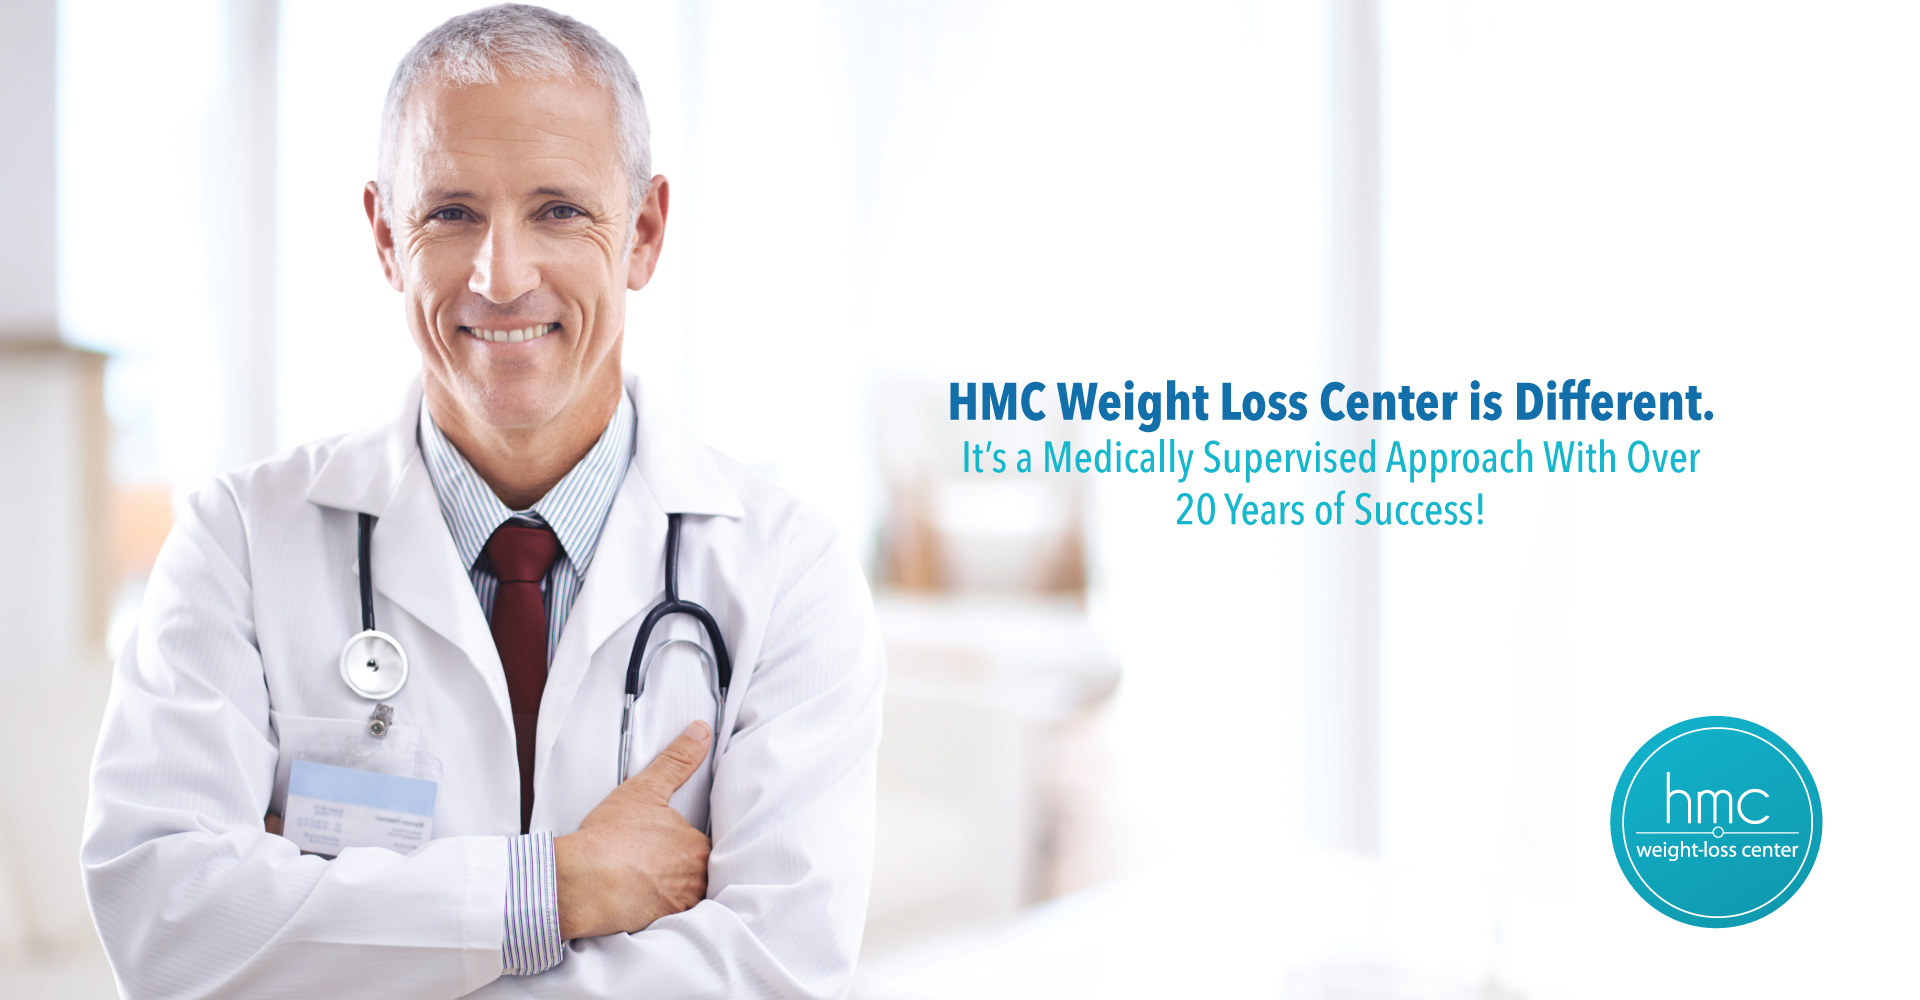 HMC Weight Loss Center is Different